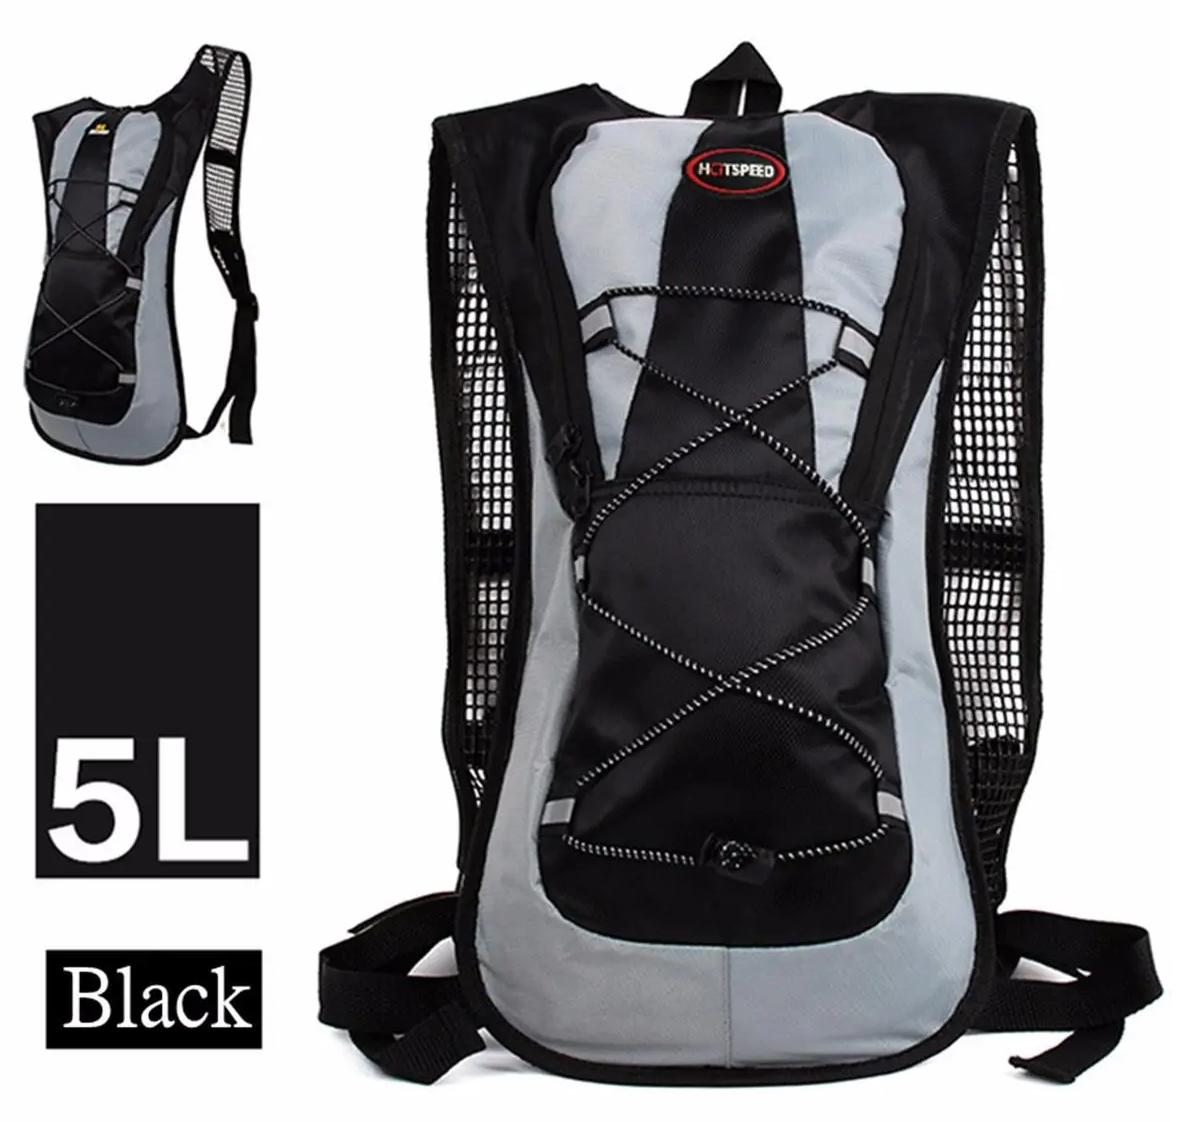 HotSpeed™ Running Hydration Pack 5L Backpack for 2L Water Bladder Bag